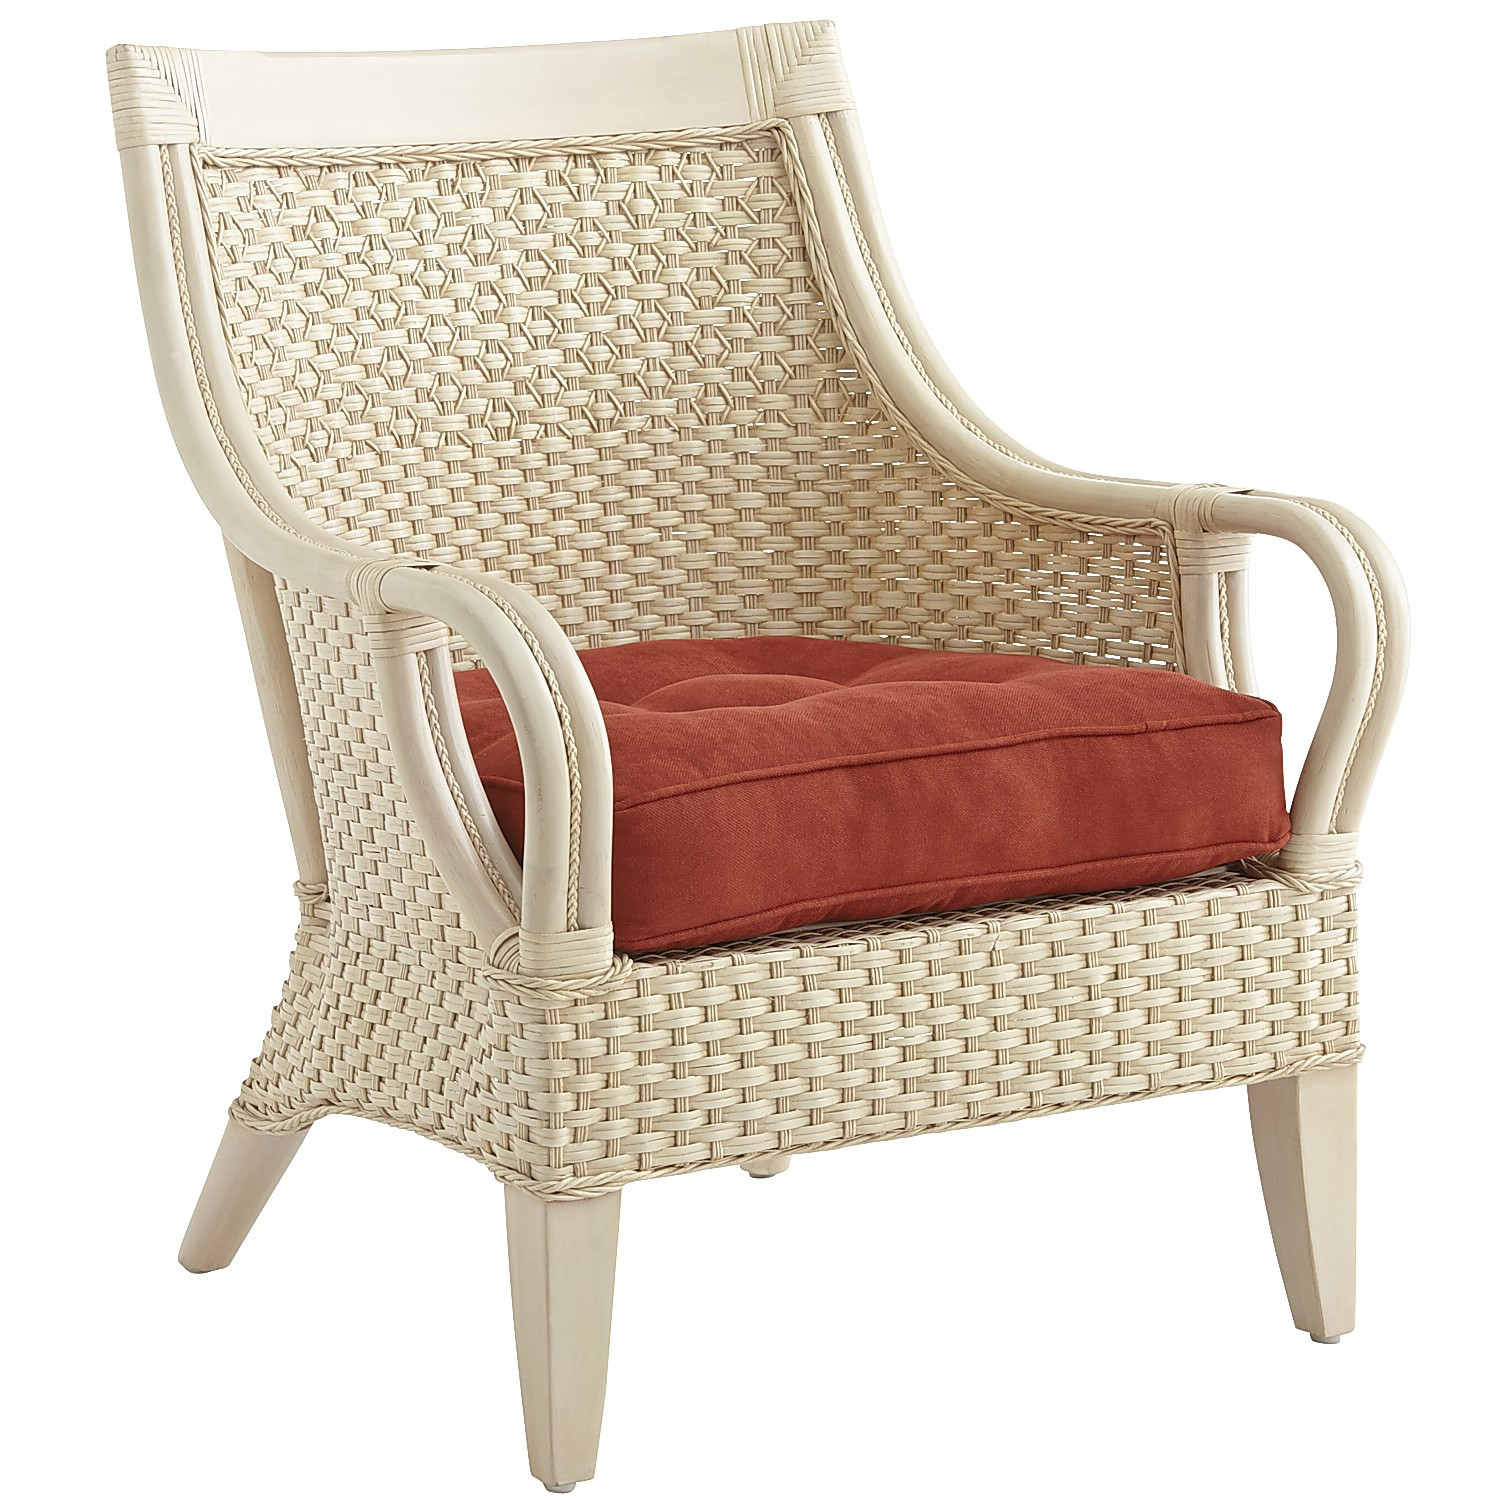 Pier One Wicker Chairs Pier 1 Imports Recalls Temani Wicker Furniture Due To